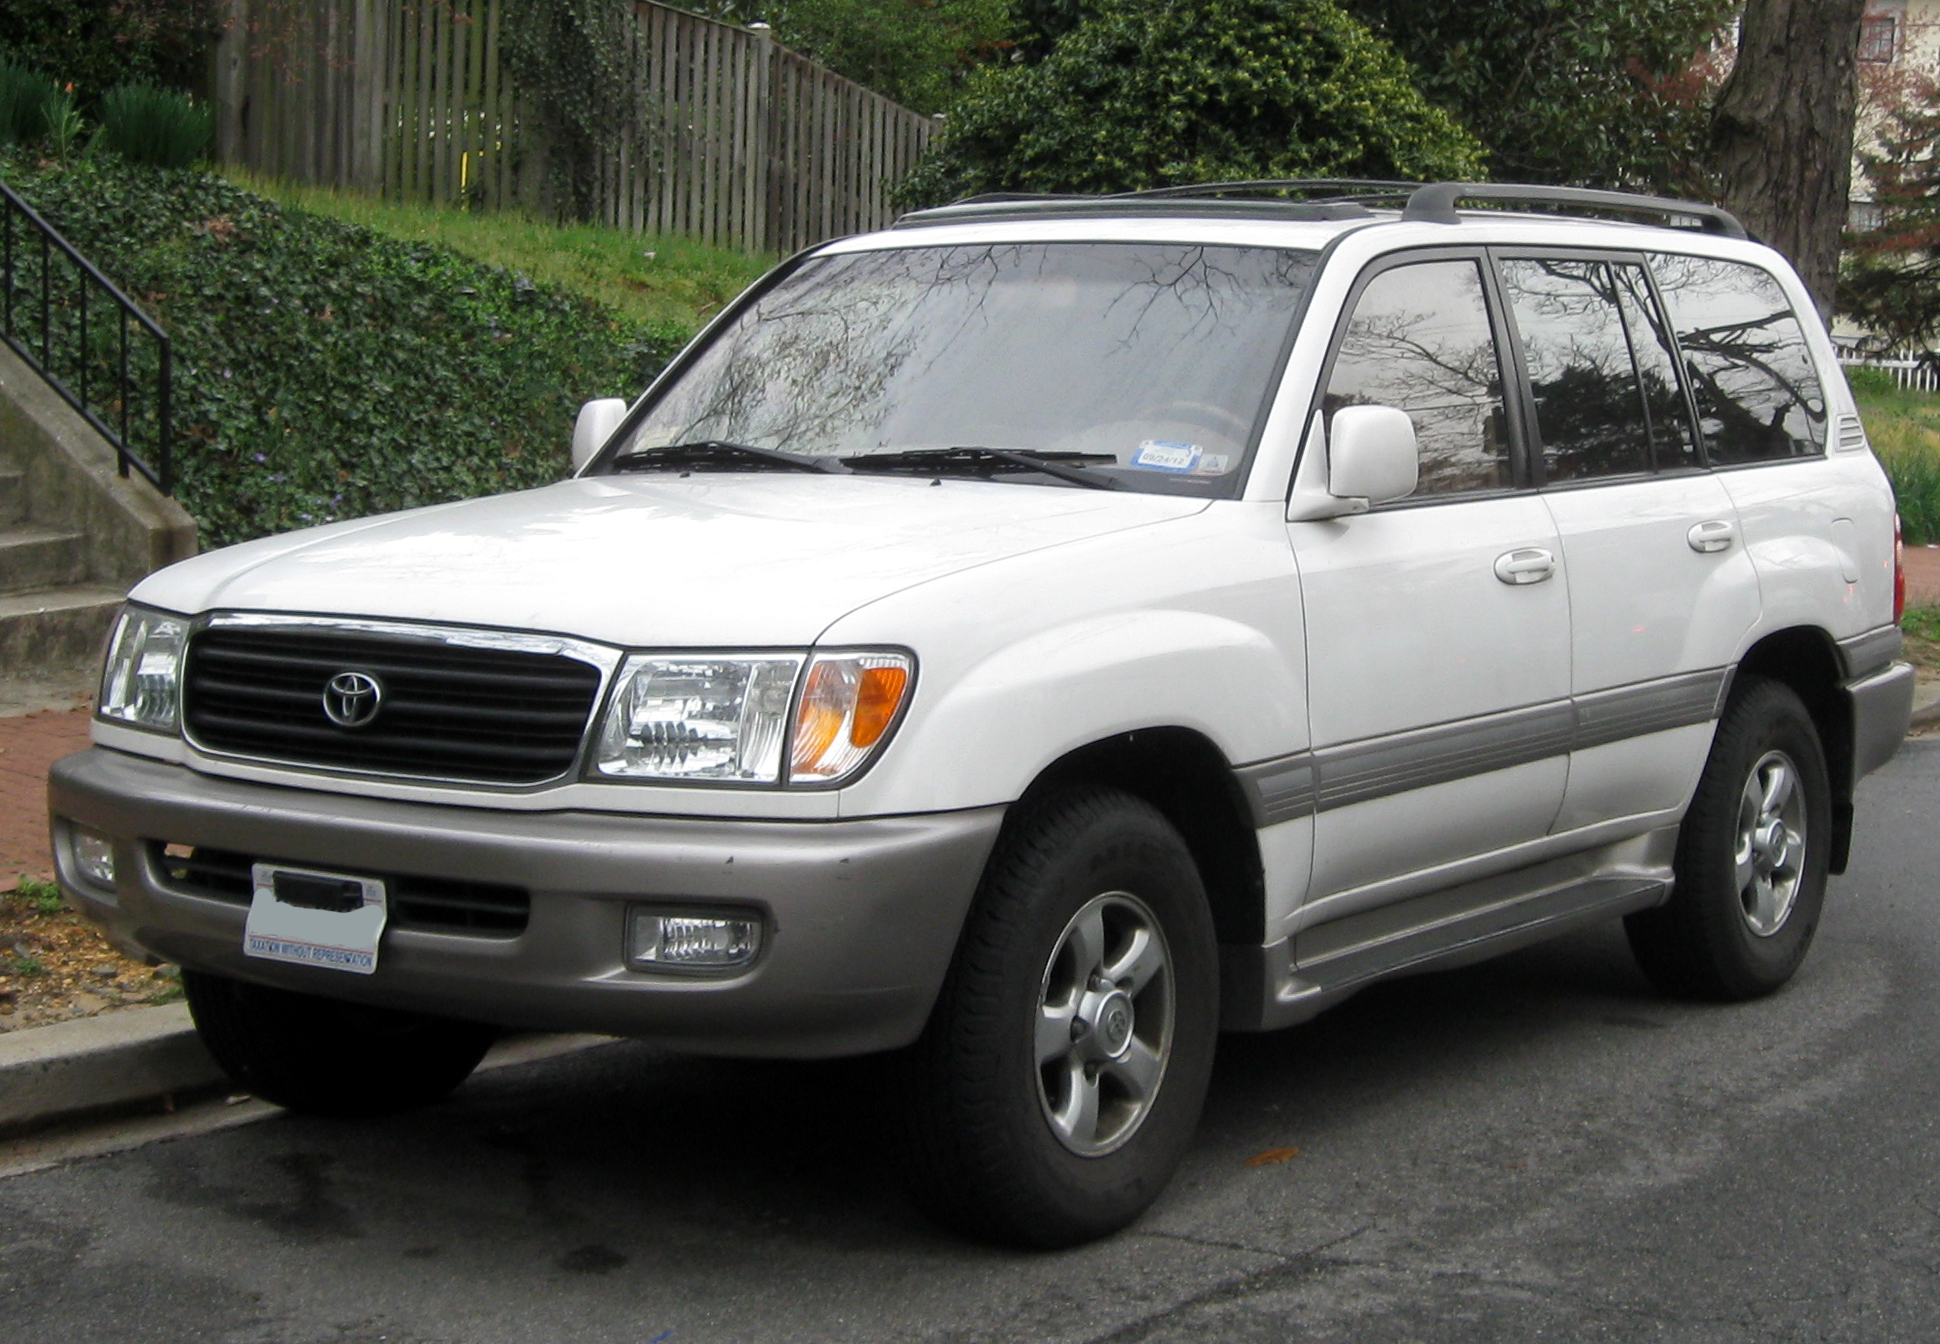 Description Toyota Land Cruiser -- 03-21-2012 1.JPG